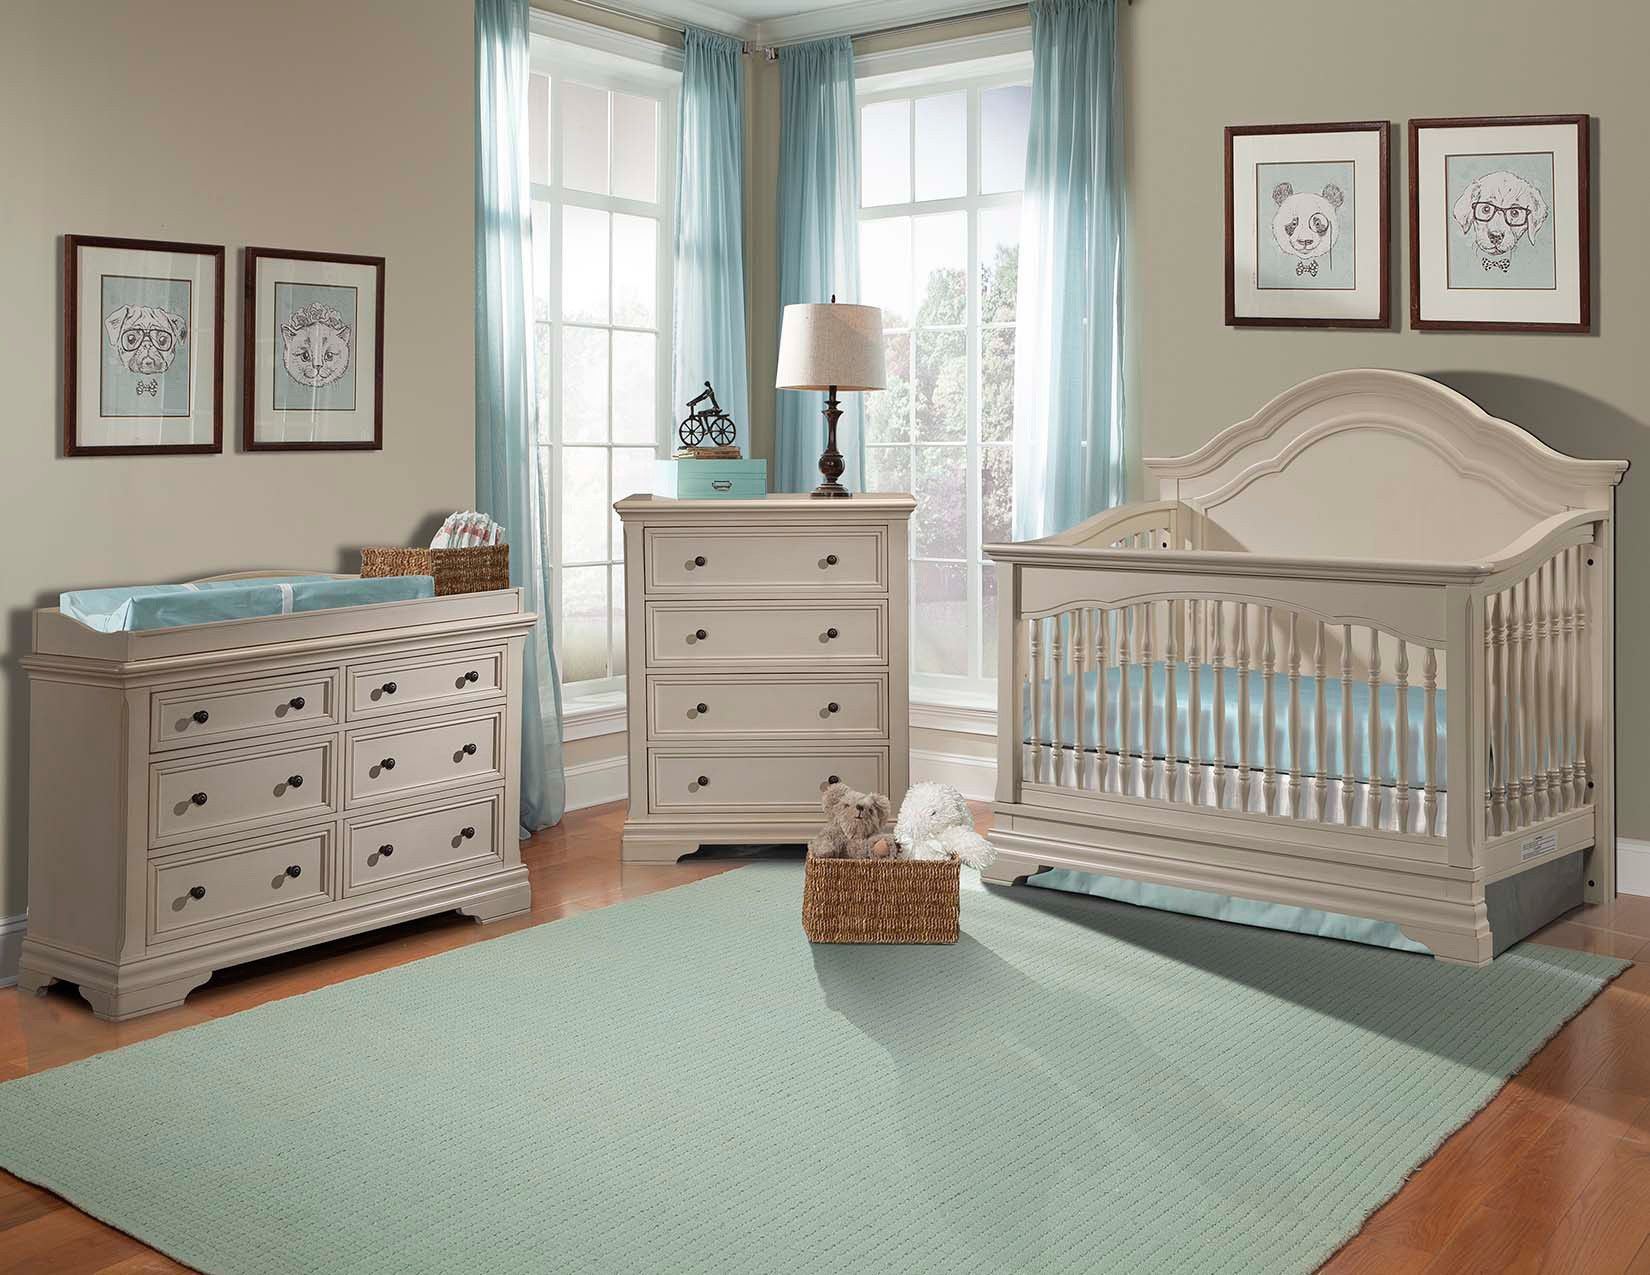 Stella Baby And Child Athena 3 Piece Nursery Set In Belgium Cream Also Comes French White At Behr S